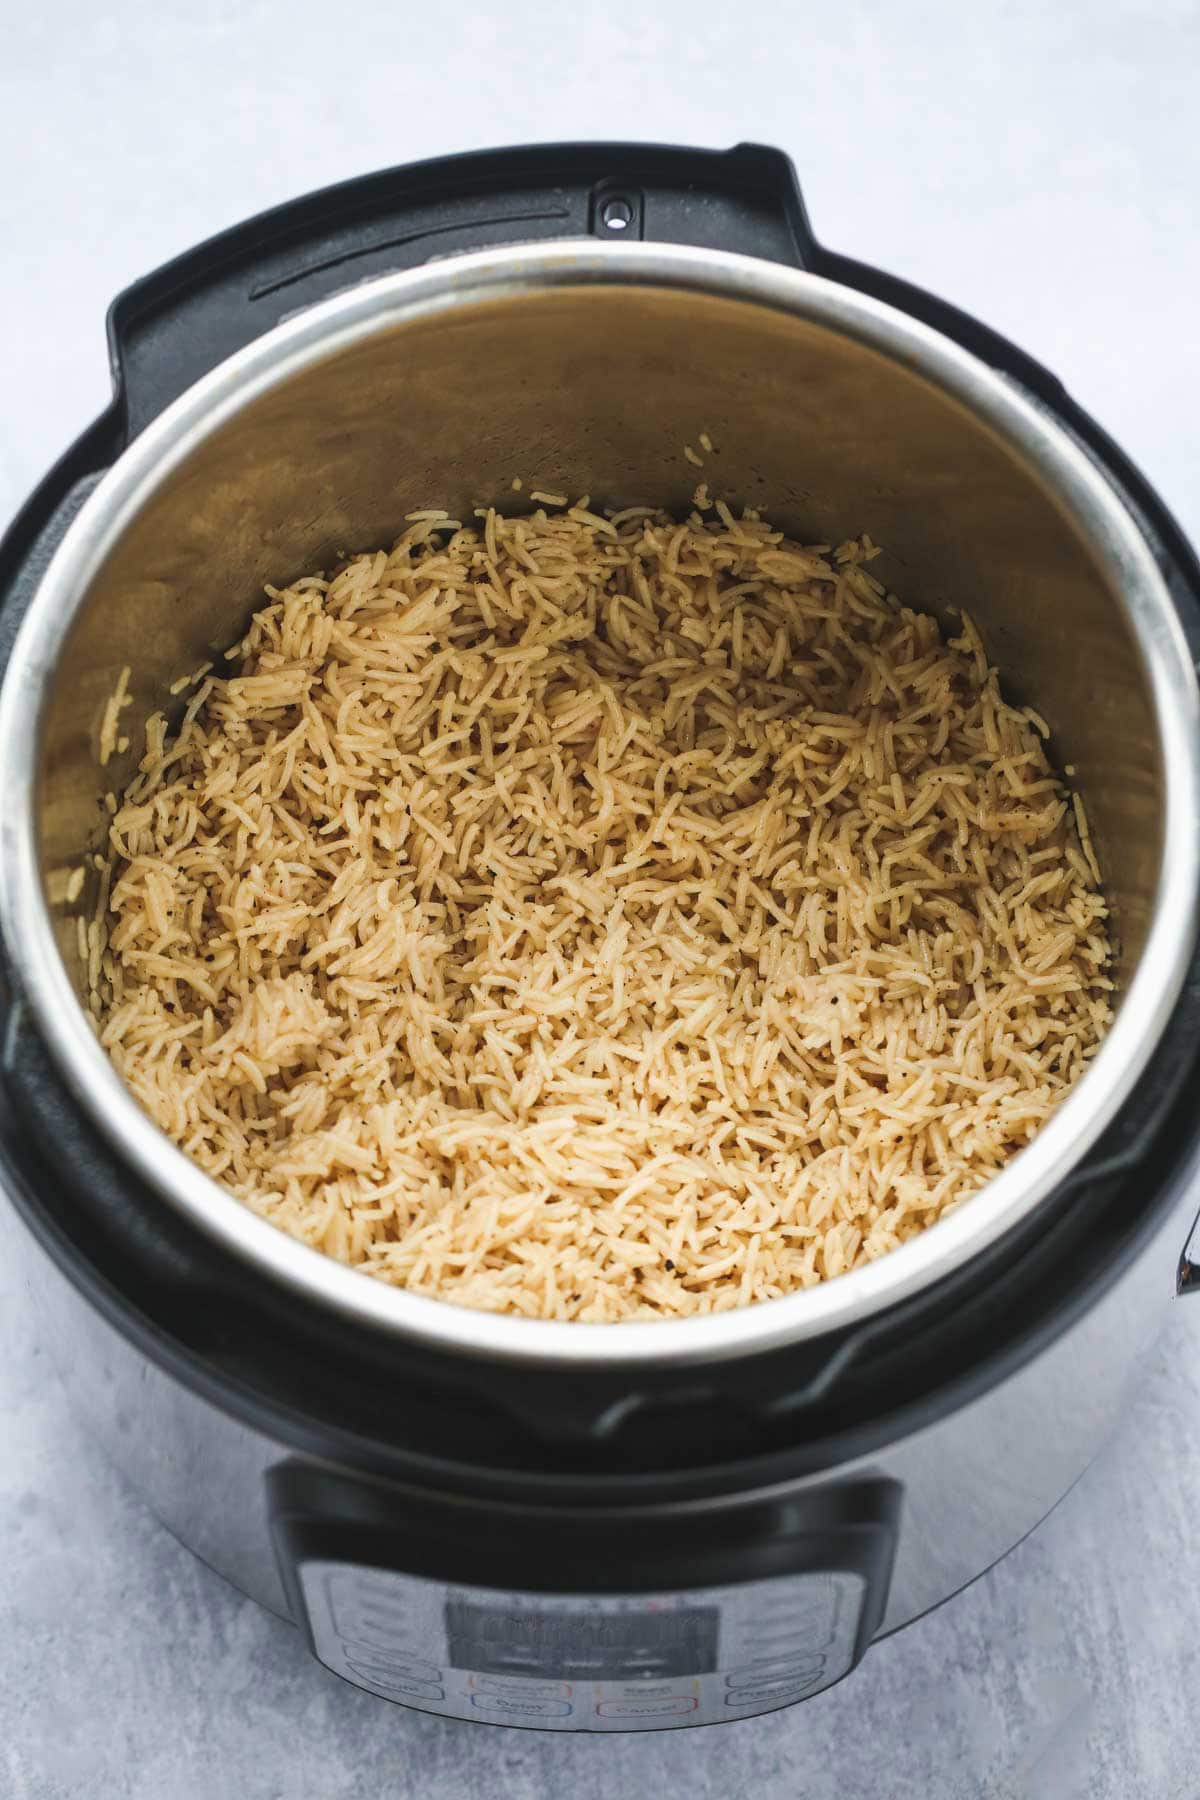 fluffed rice inside the instant pot